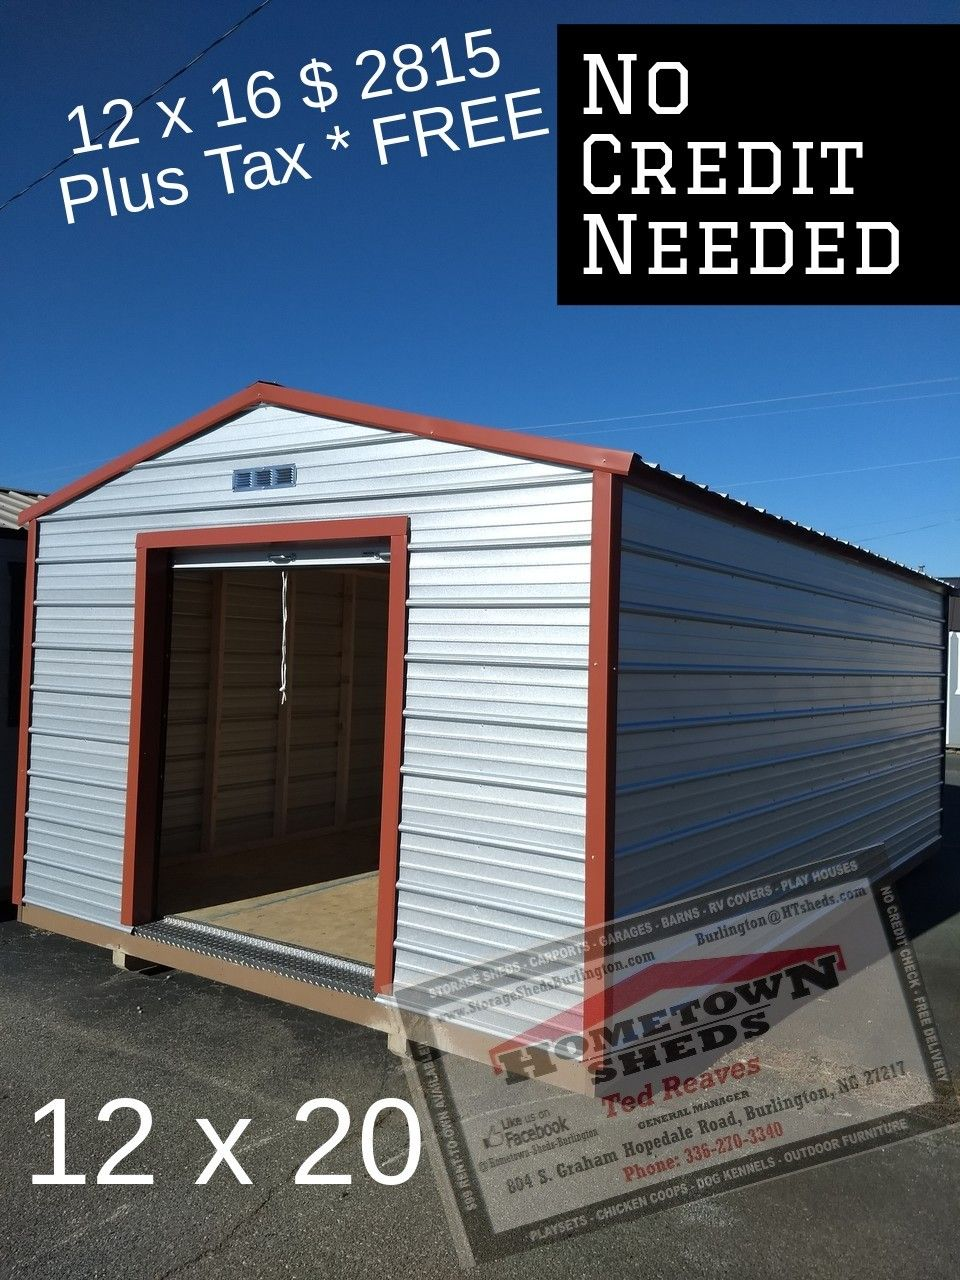 New and Used Sheds Free Delivery and Set Up No Credit